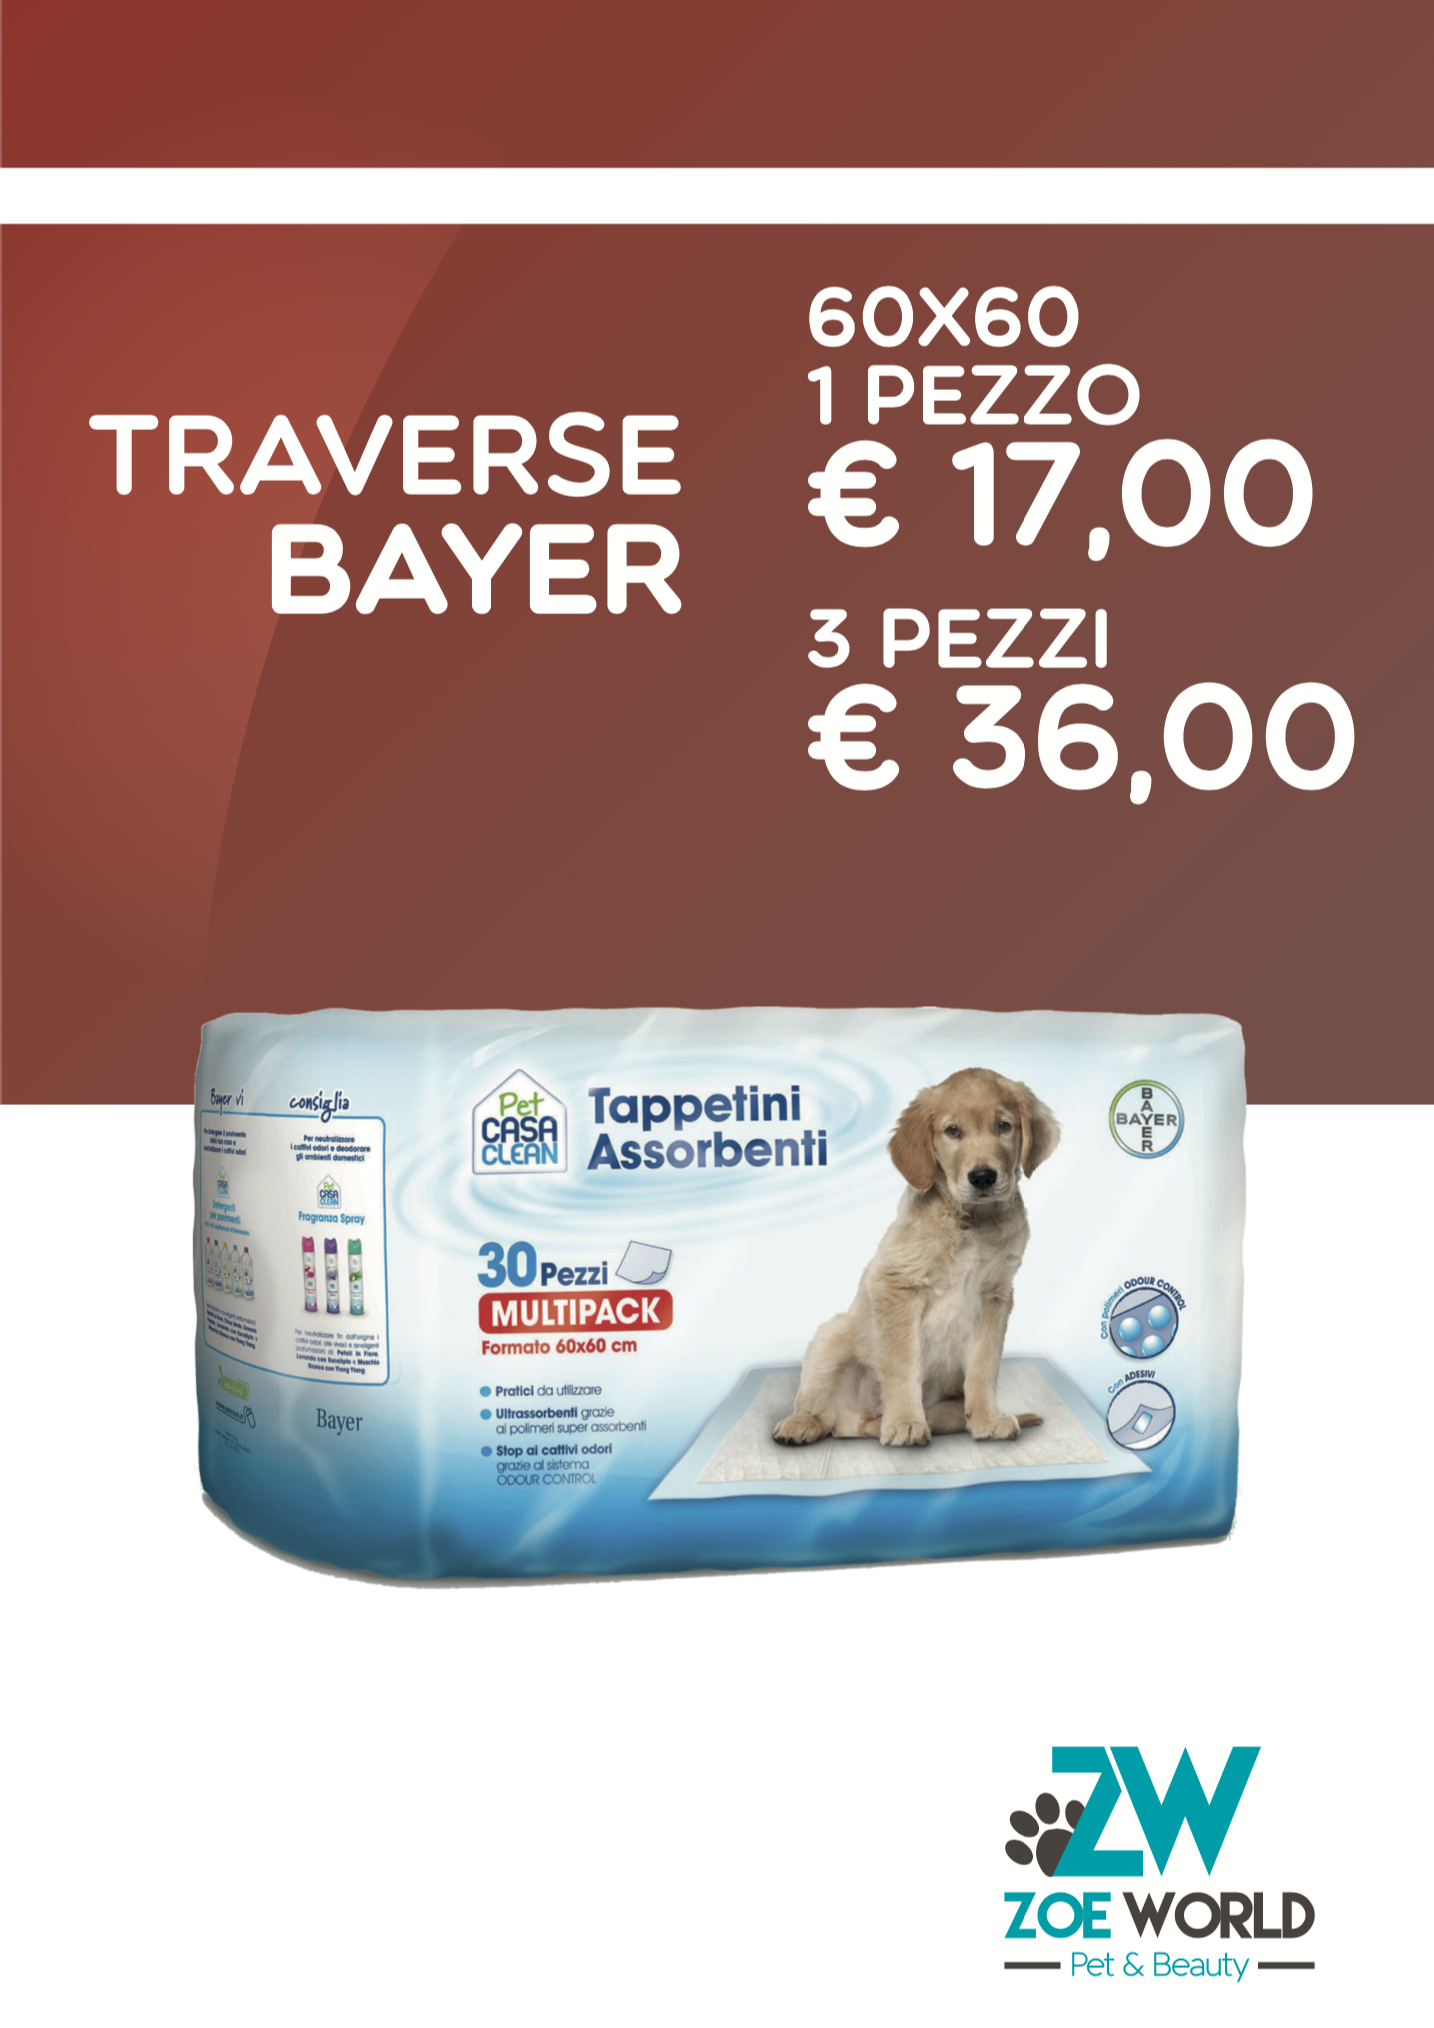 Traverse Bayer